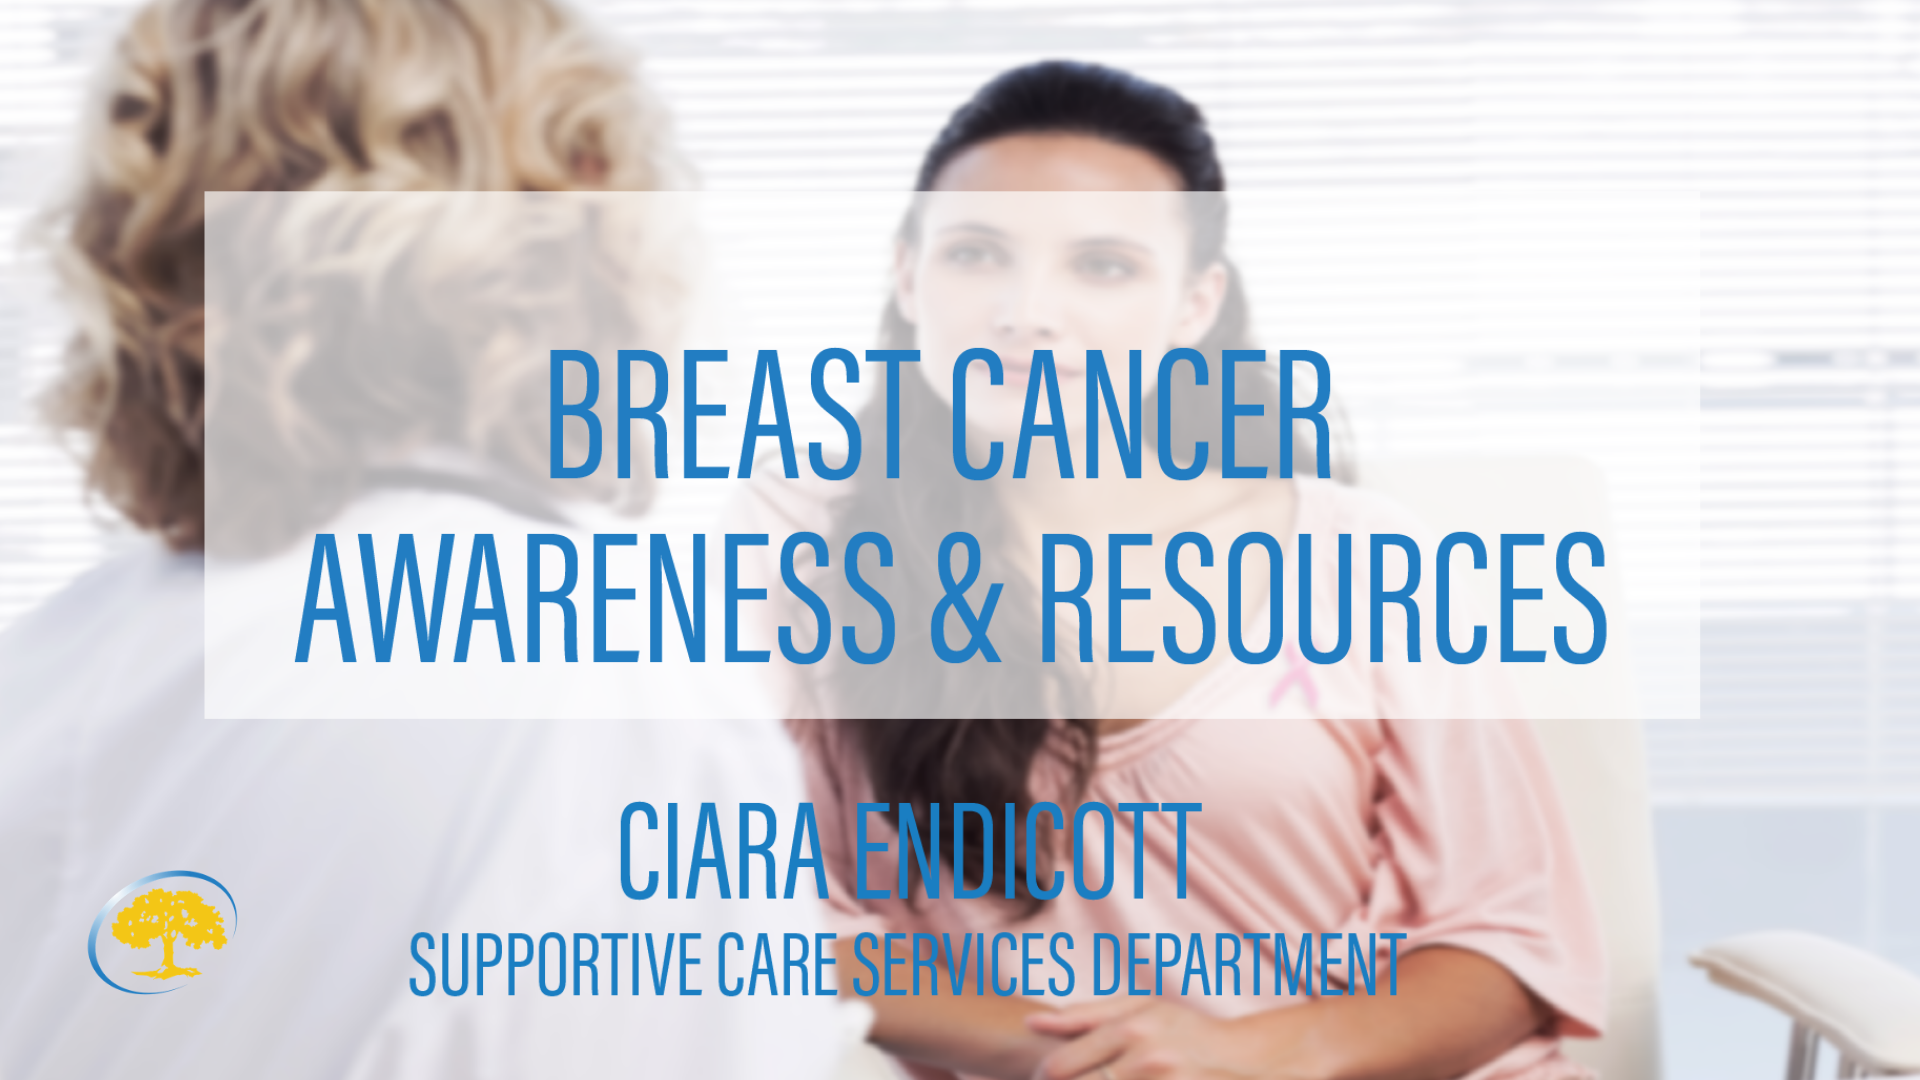 Breast Cancer Awareness & Resources